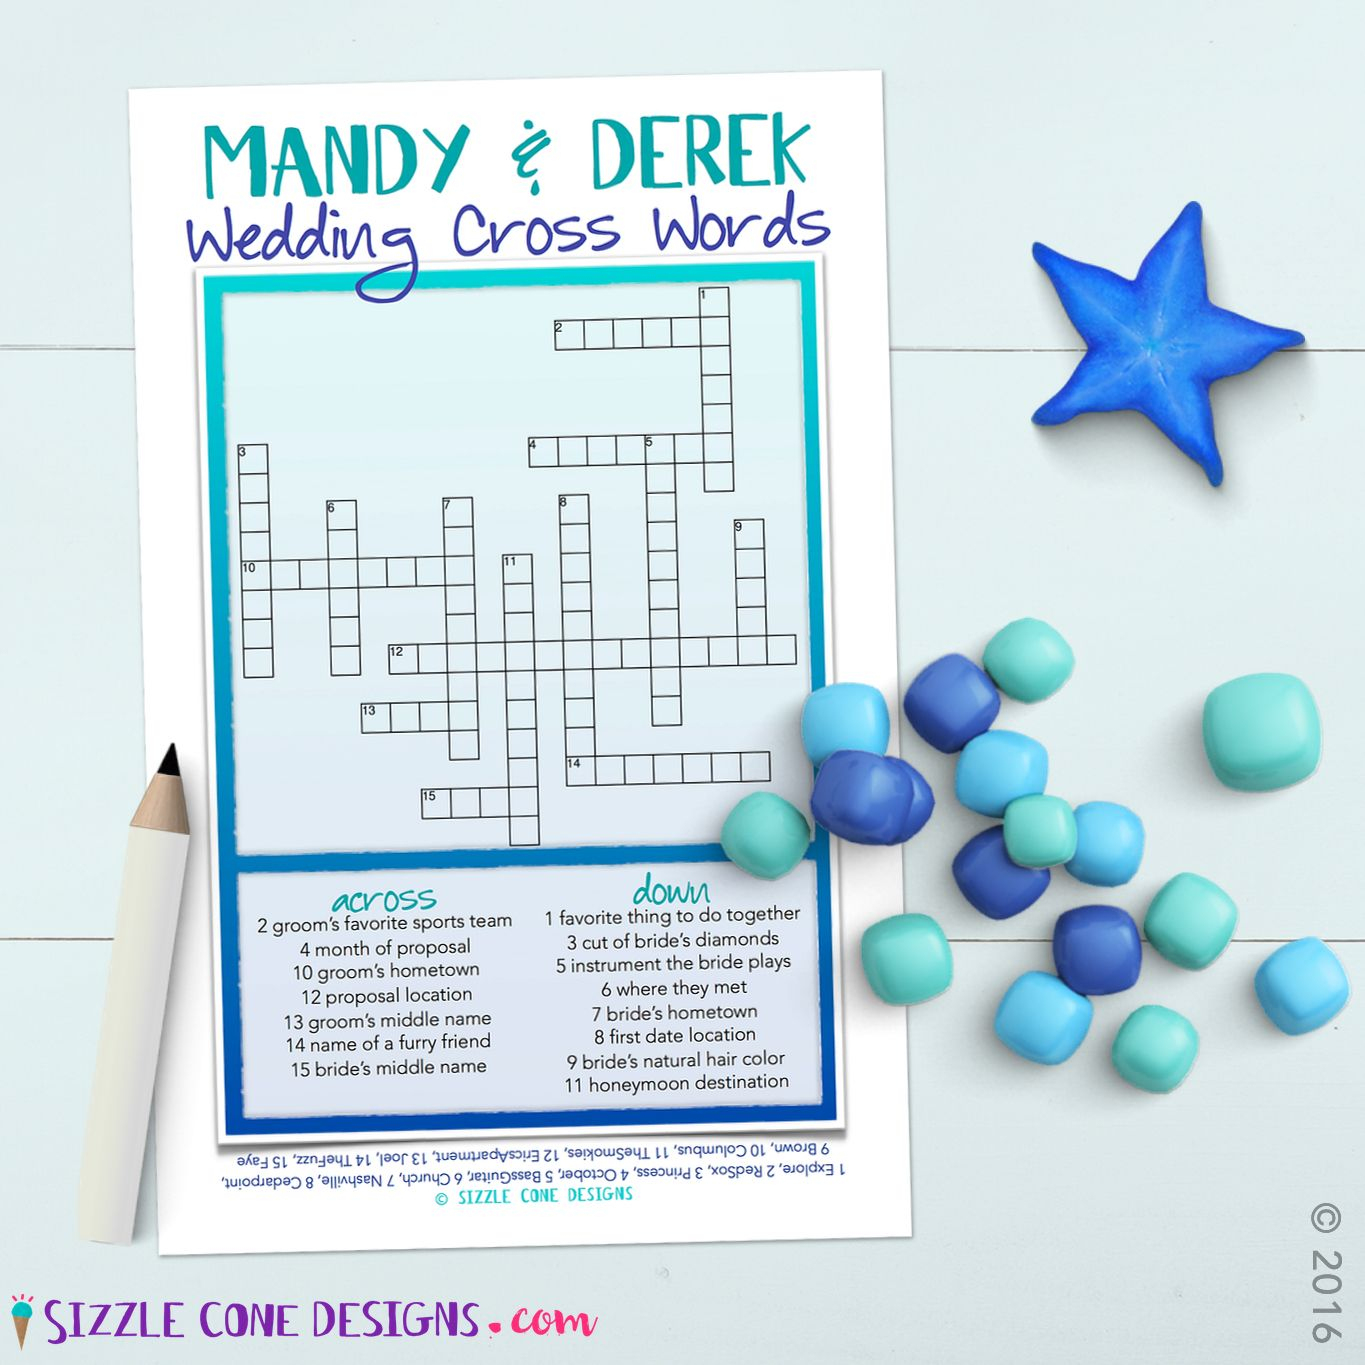 Custom Wedding Crossword Puzzle Game Printable #219 | Member Board - Free Printable Wedding Crossword Puzzle